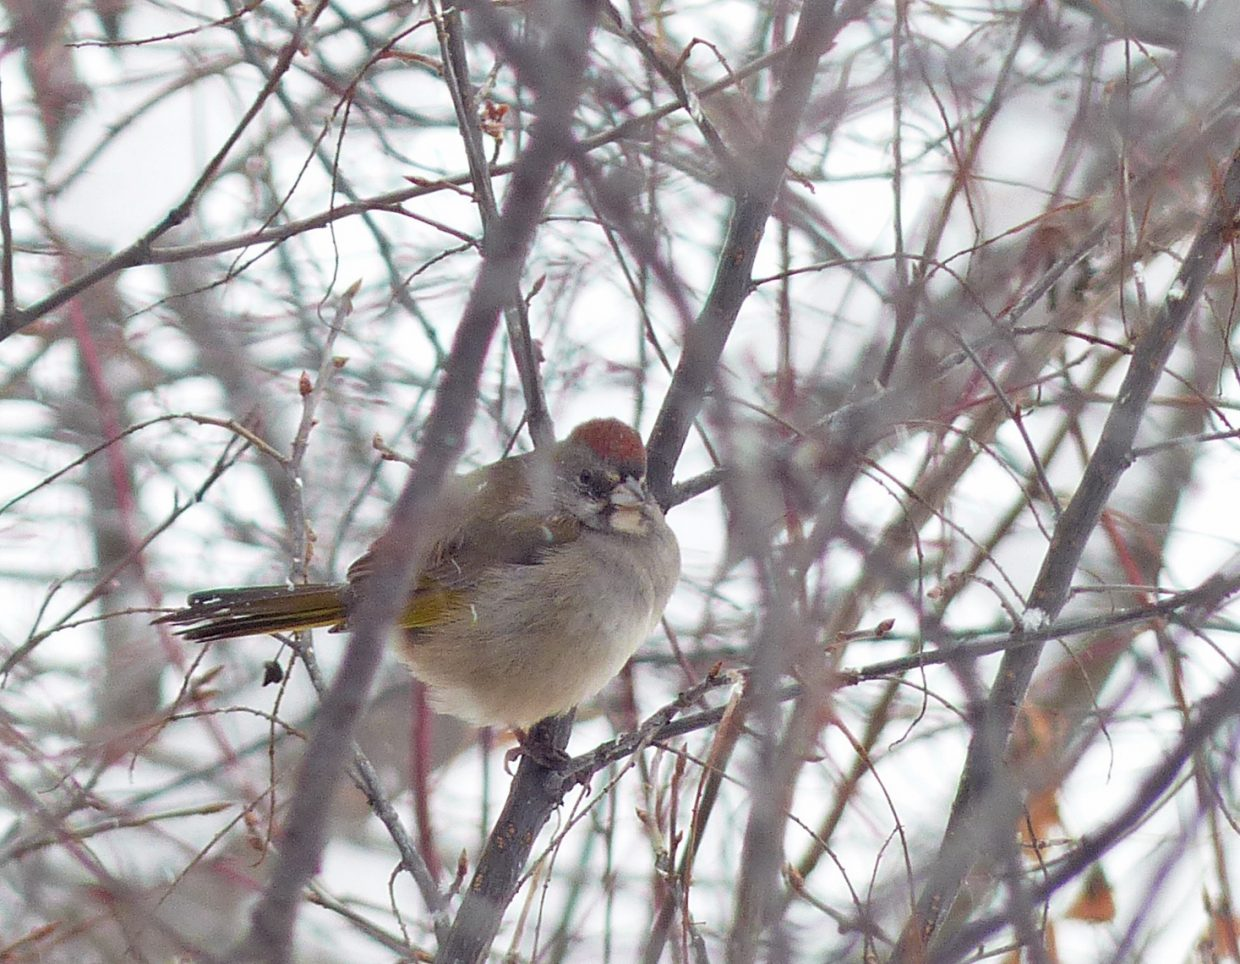 Green-tailed towhee seen during the 2014 Christmas Bird Count in Steamboat Springs. This bird is usually a summer resident in our area. It is quite rare to see them here in the winter. Submitted by: David Moulton